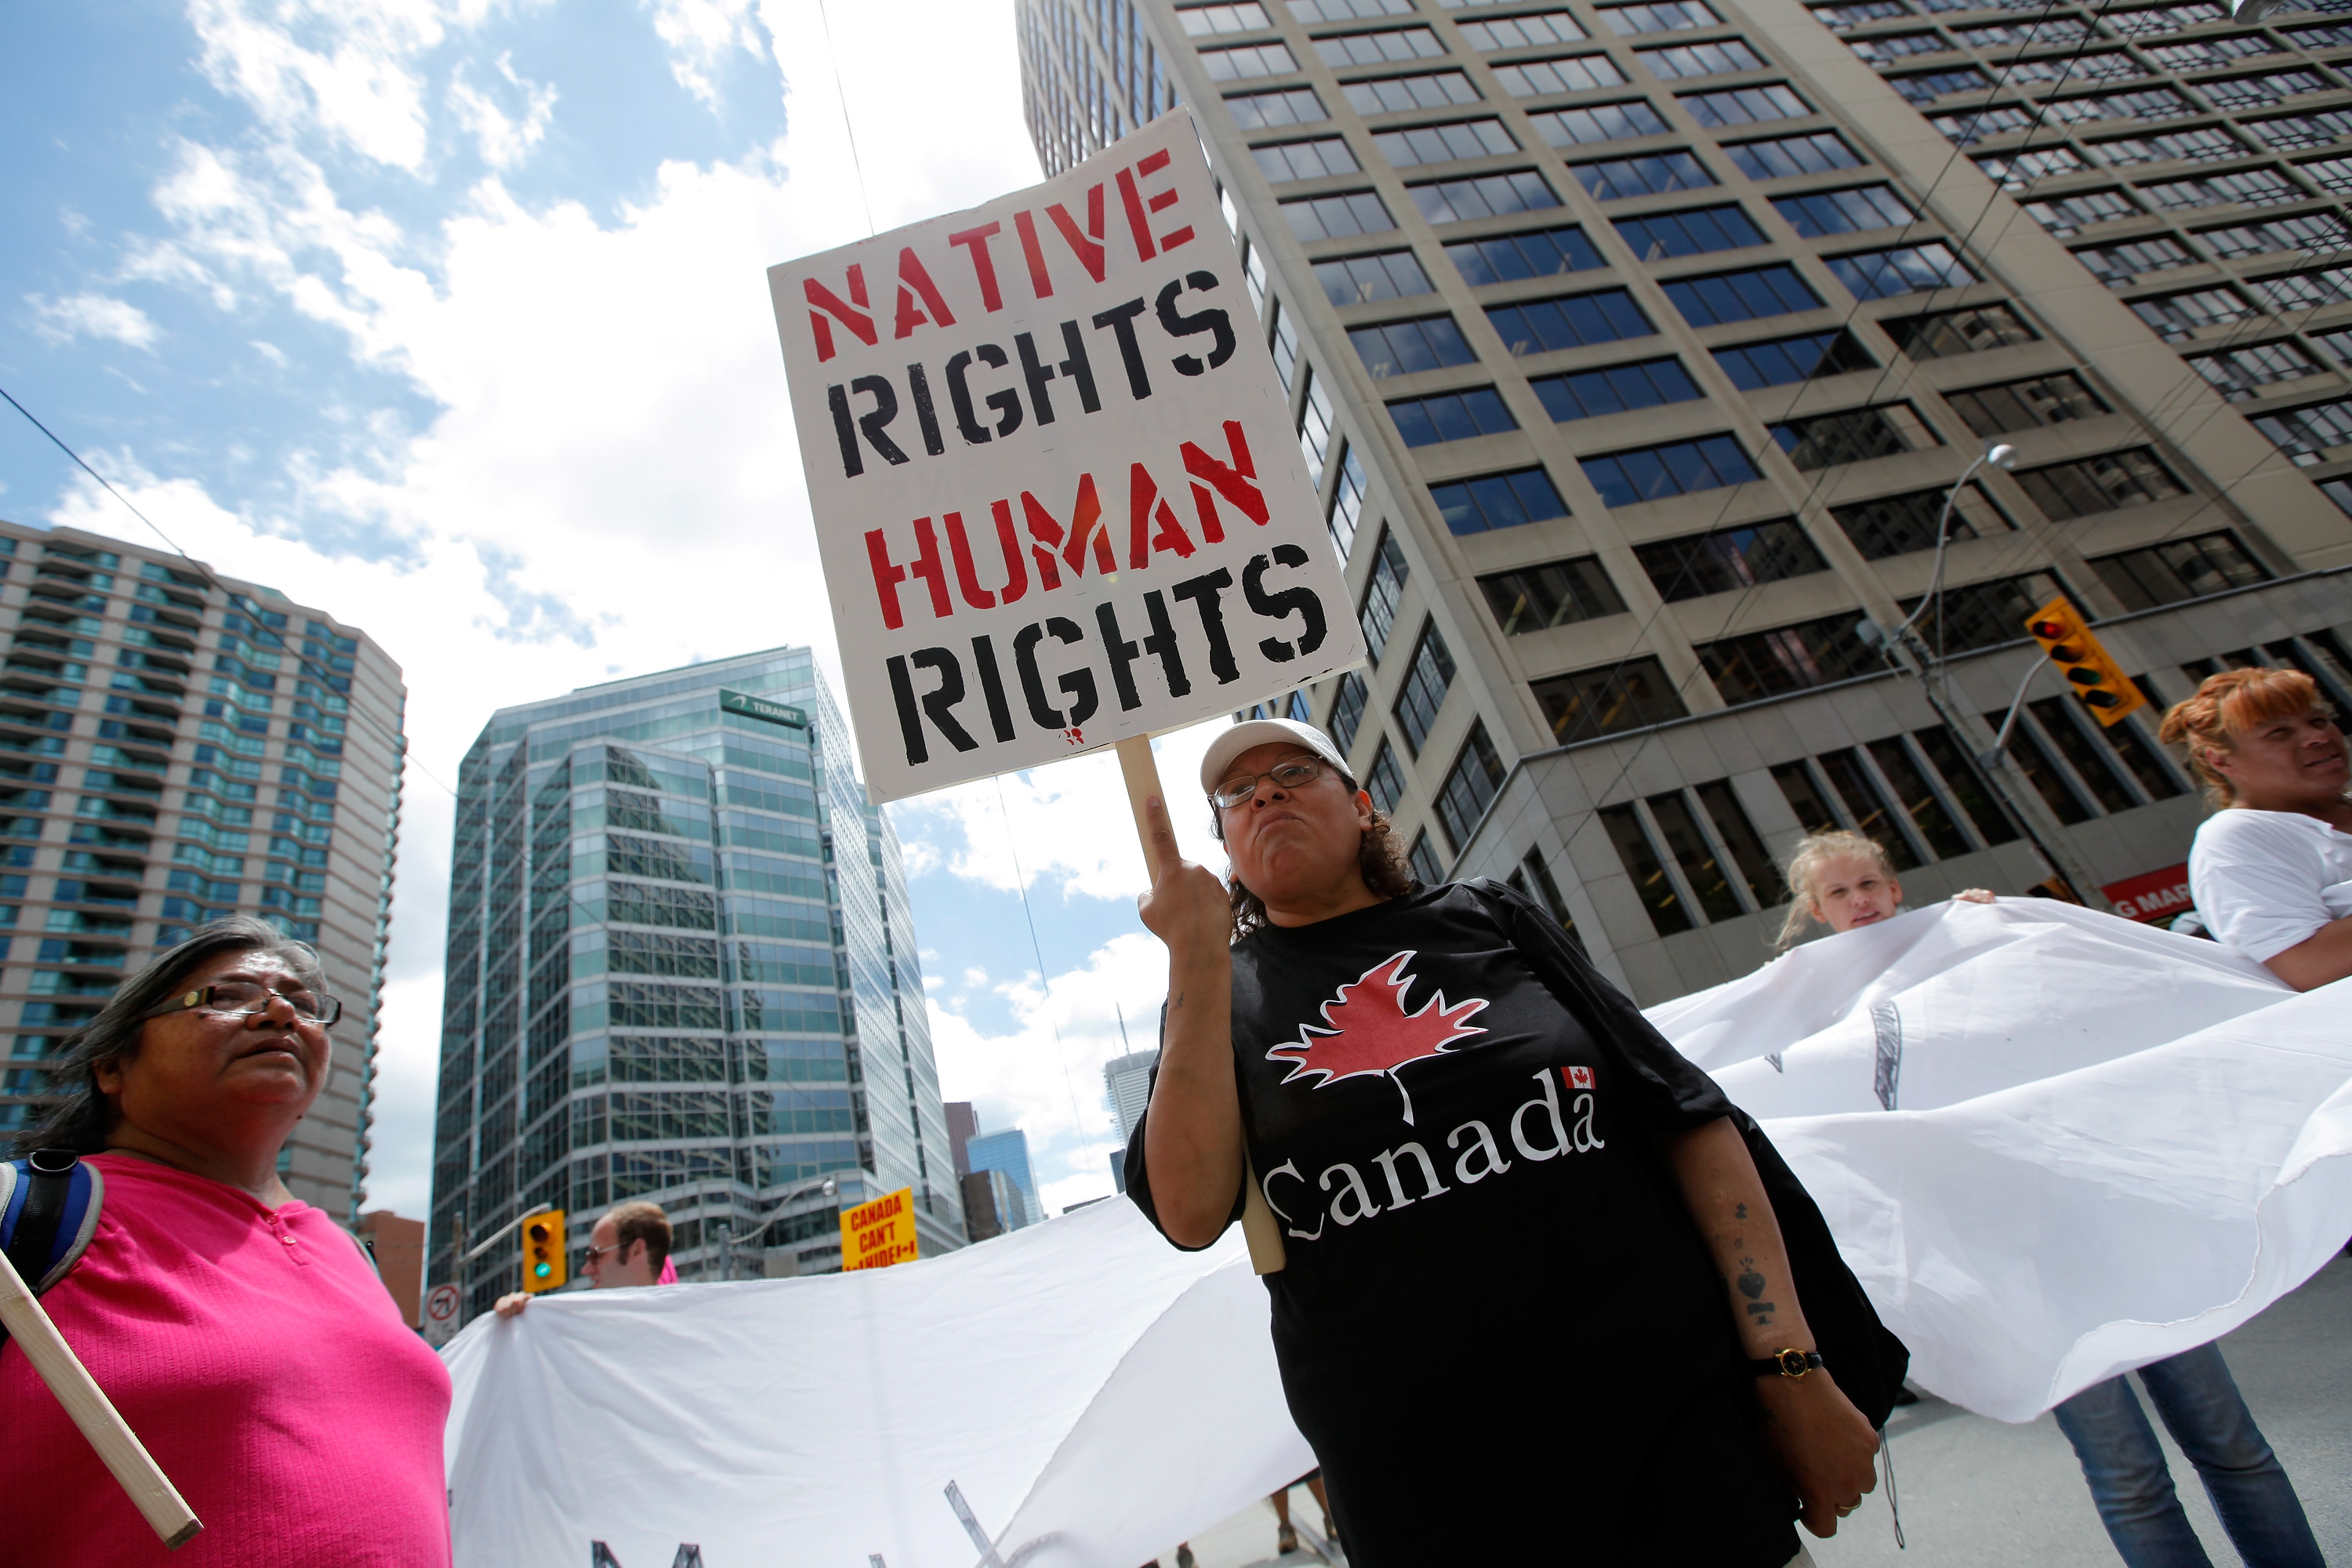 A woman holds a sign as several hundred indigenous people march through the streets of Toronto to bring attention to the plight of indigenous peoples in Canada on June 24, 2010